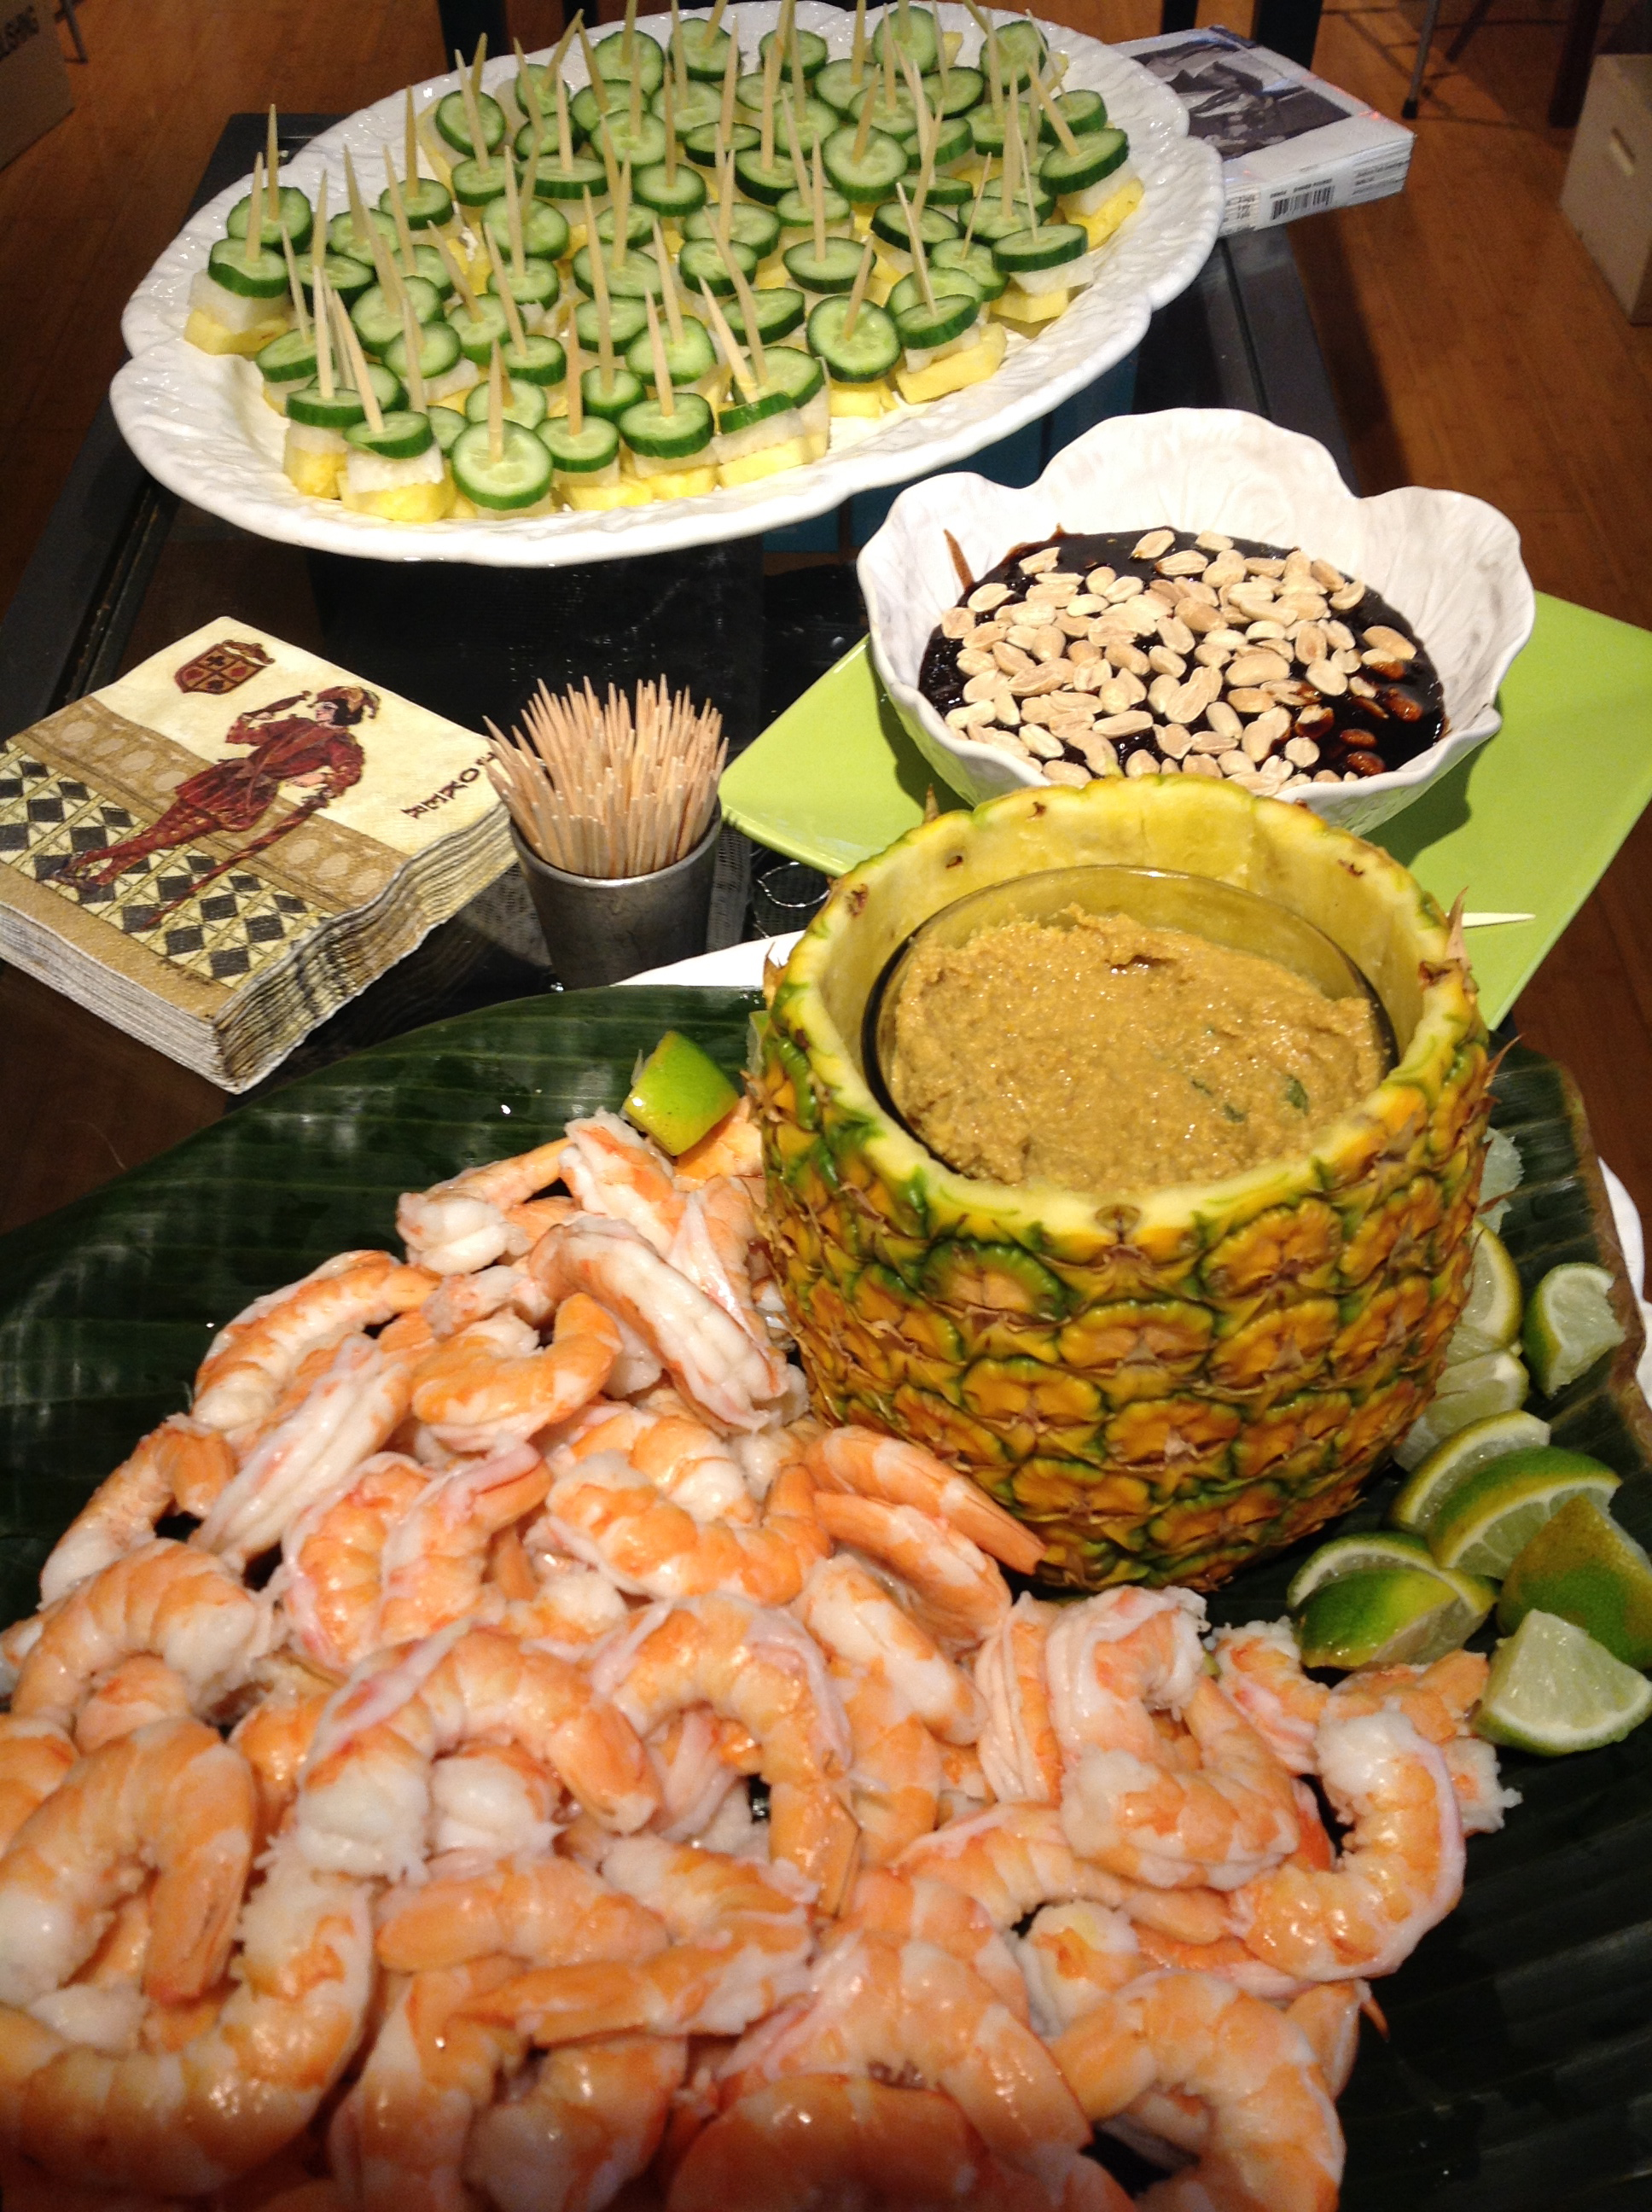 Shrimp with rendang dip and rojak salad on a stick with shrimp paste and sweet soy dip.